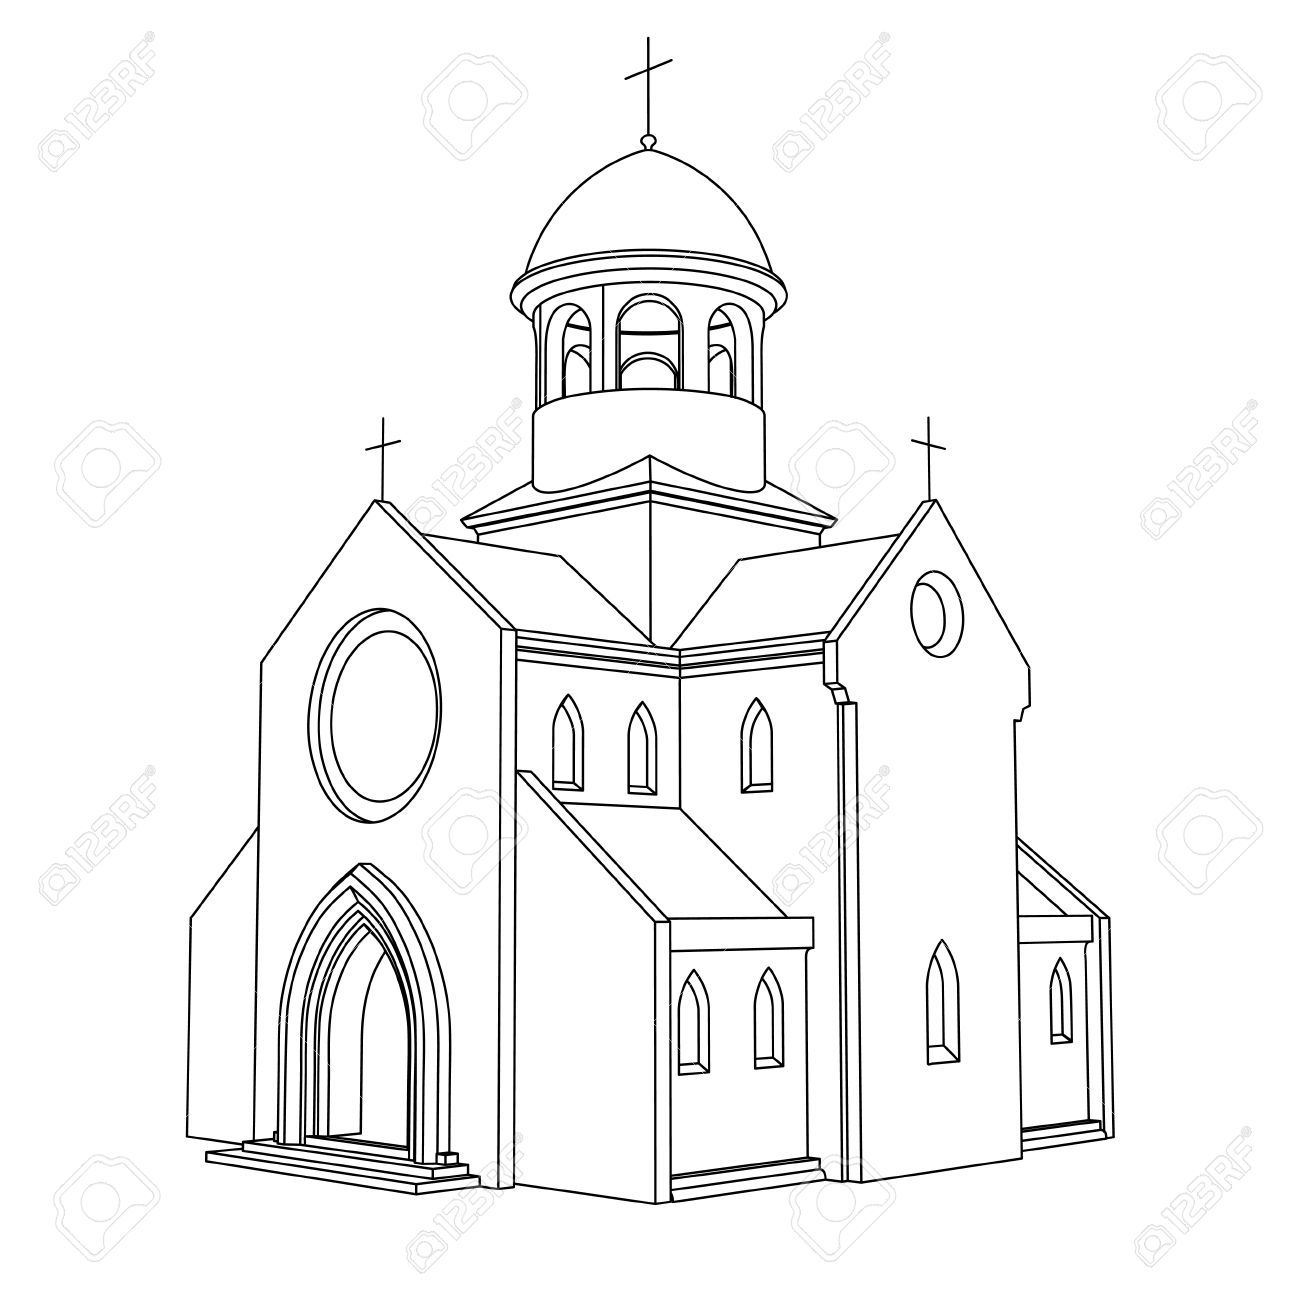 Cathedral Line Drawing Google Search Arquitectura Barroca Arquitectura Barroco